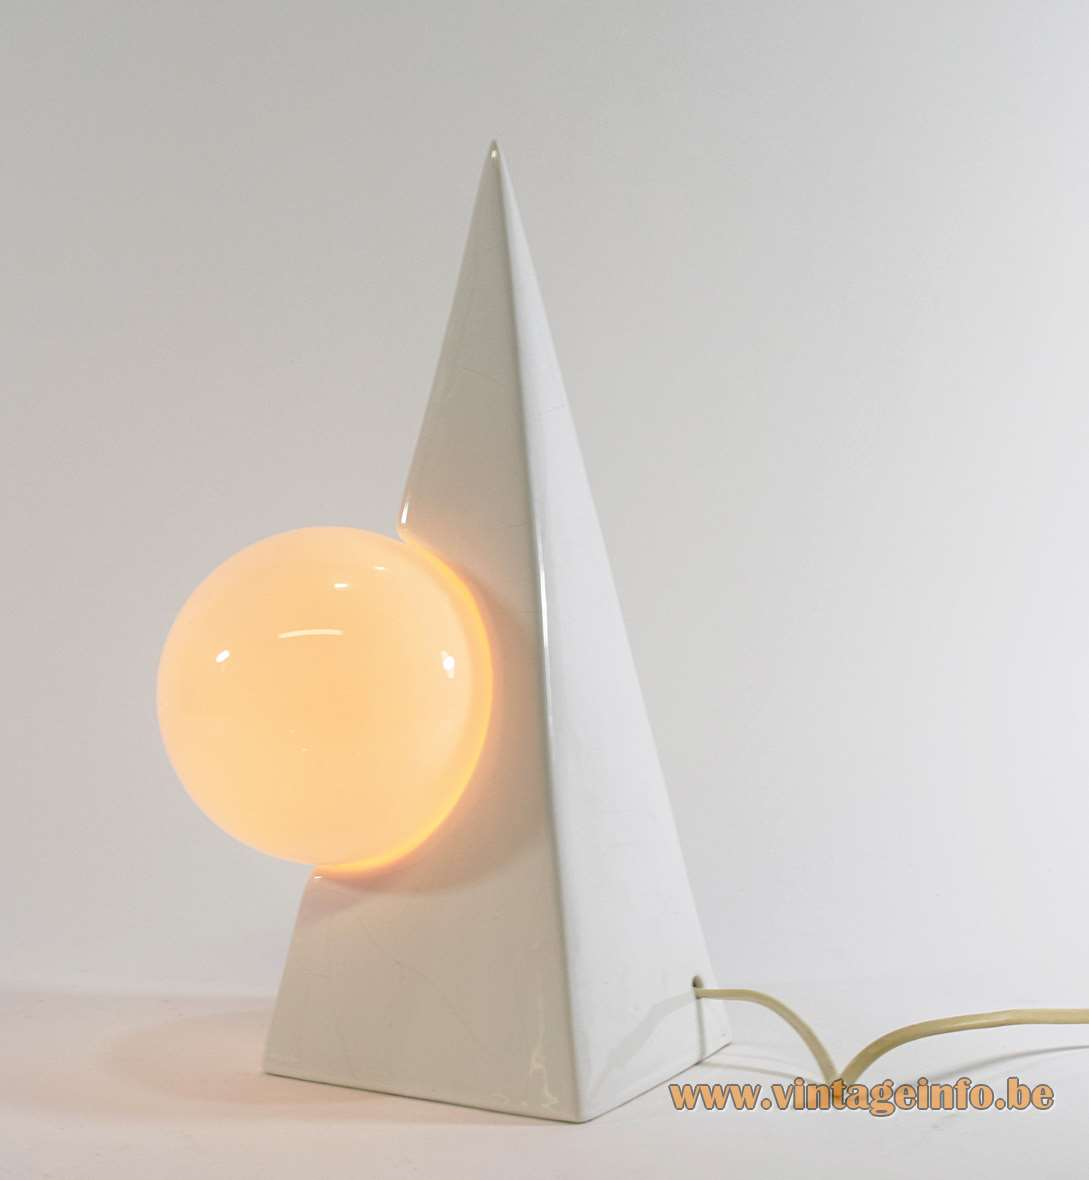 1980s Pyramid Globe Table Lamp white glazed ceramics opal glass Memphis style Massive Belgium